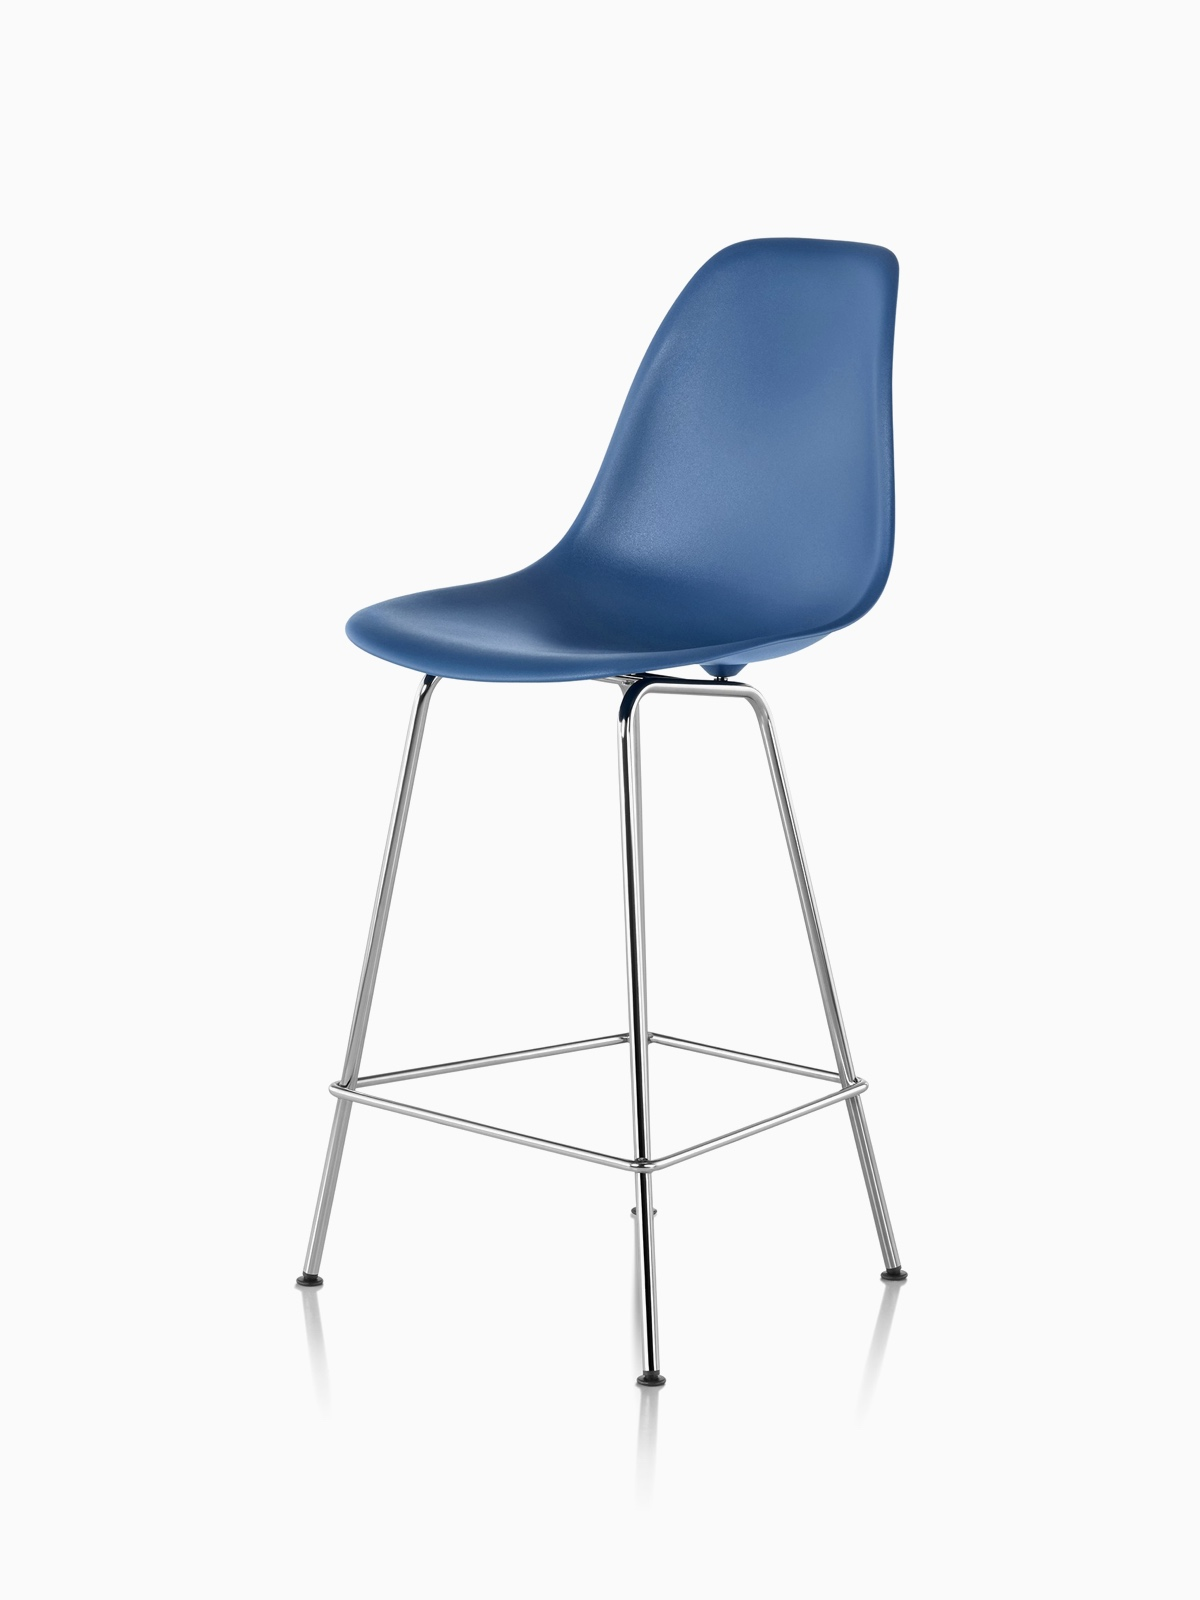 Eames Molded Plastic Stool, Counter Height